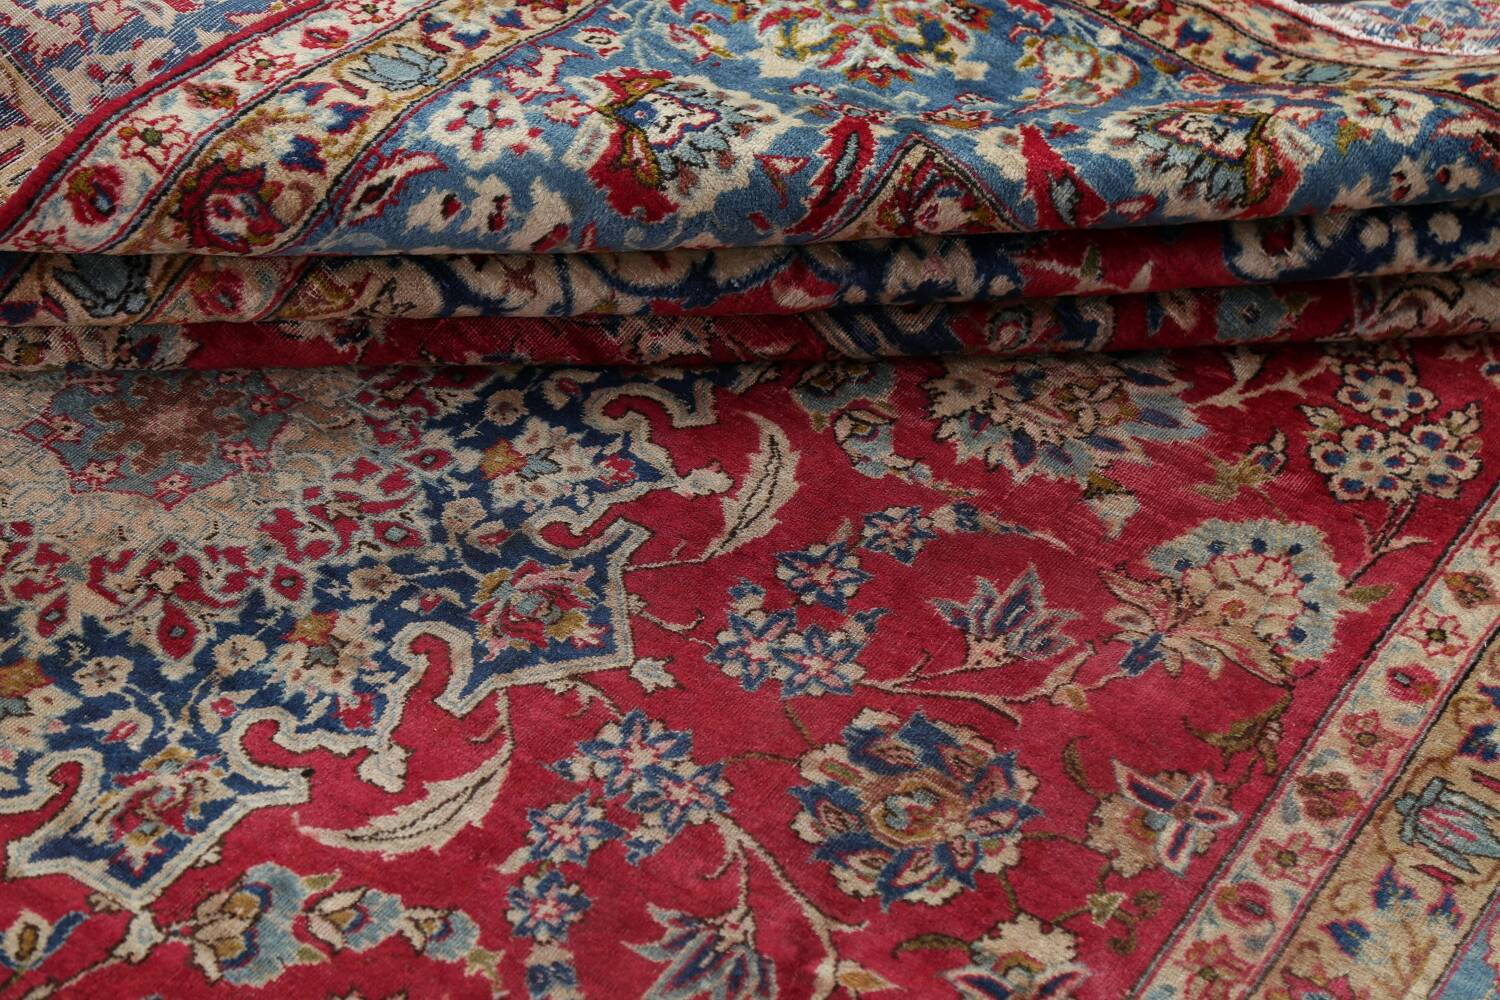 Floral Red Najafabad Persian Area Rug 8x13 image 21